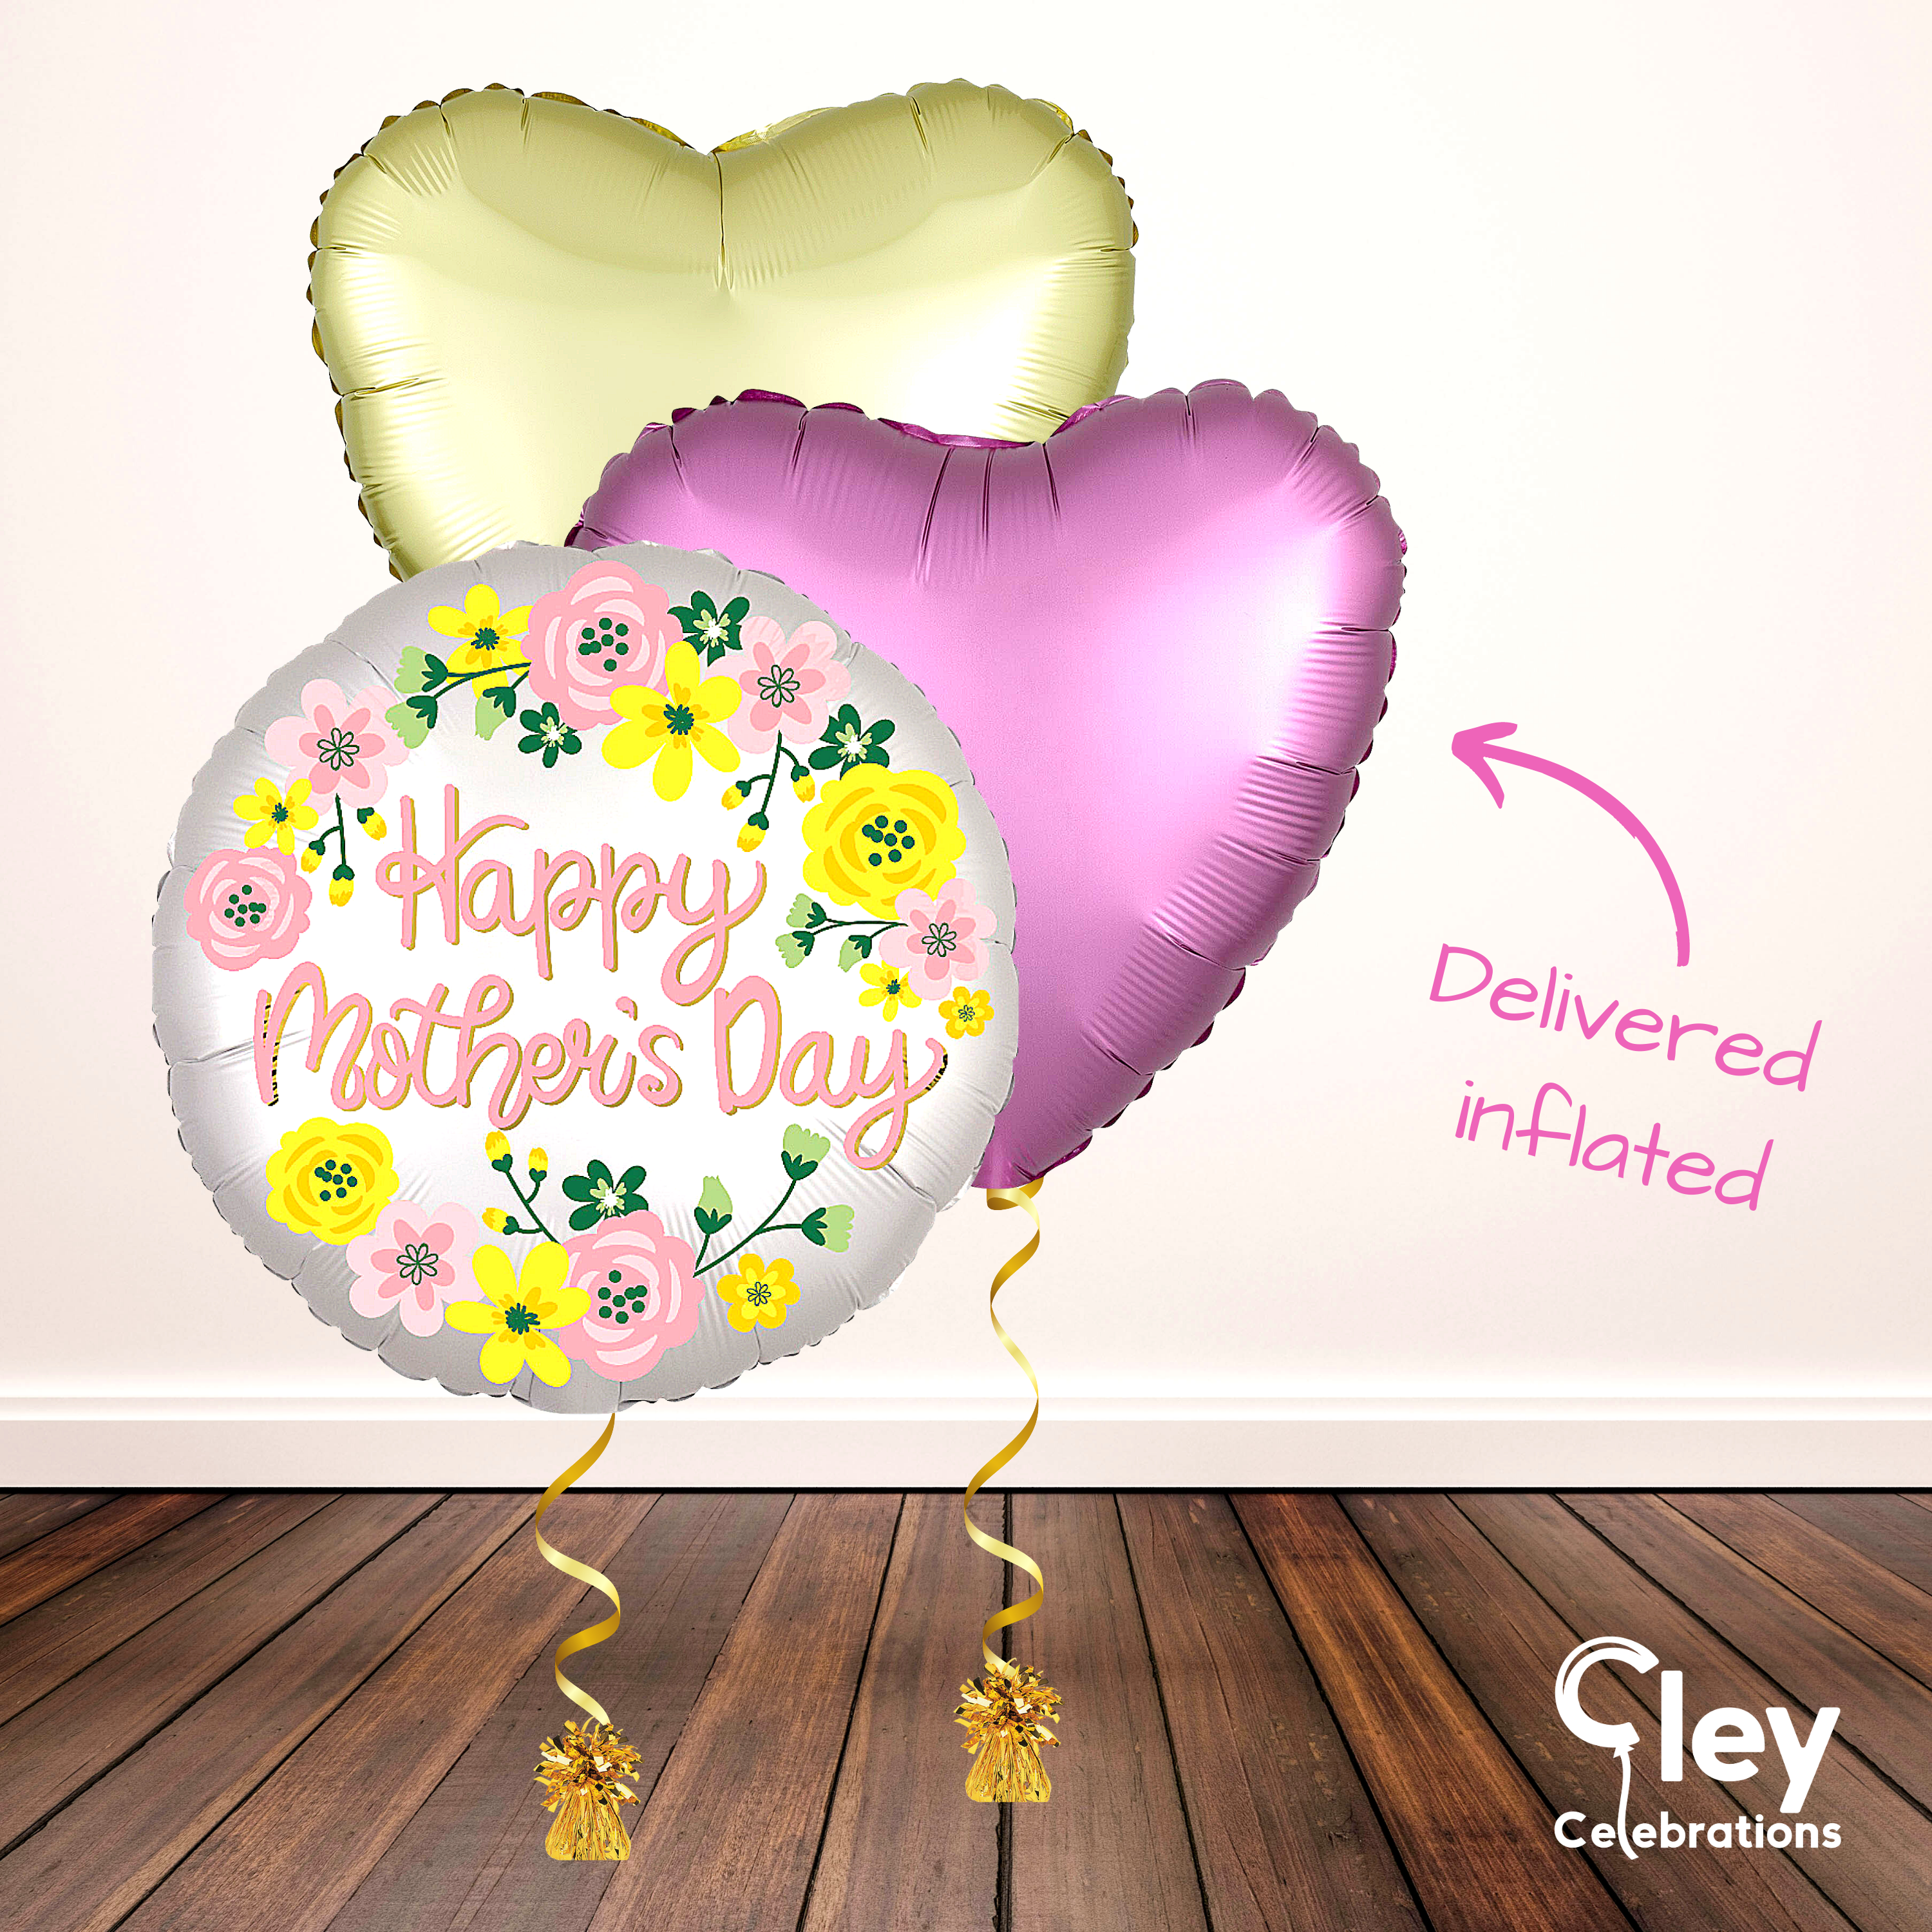 Floral Heart Mother's Day Balloon Bouquet - Delivered Inflated